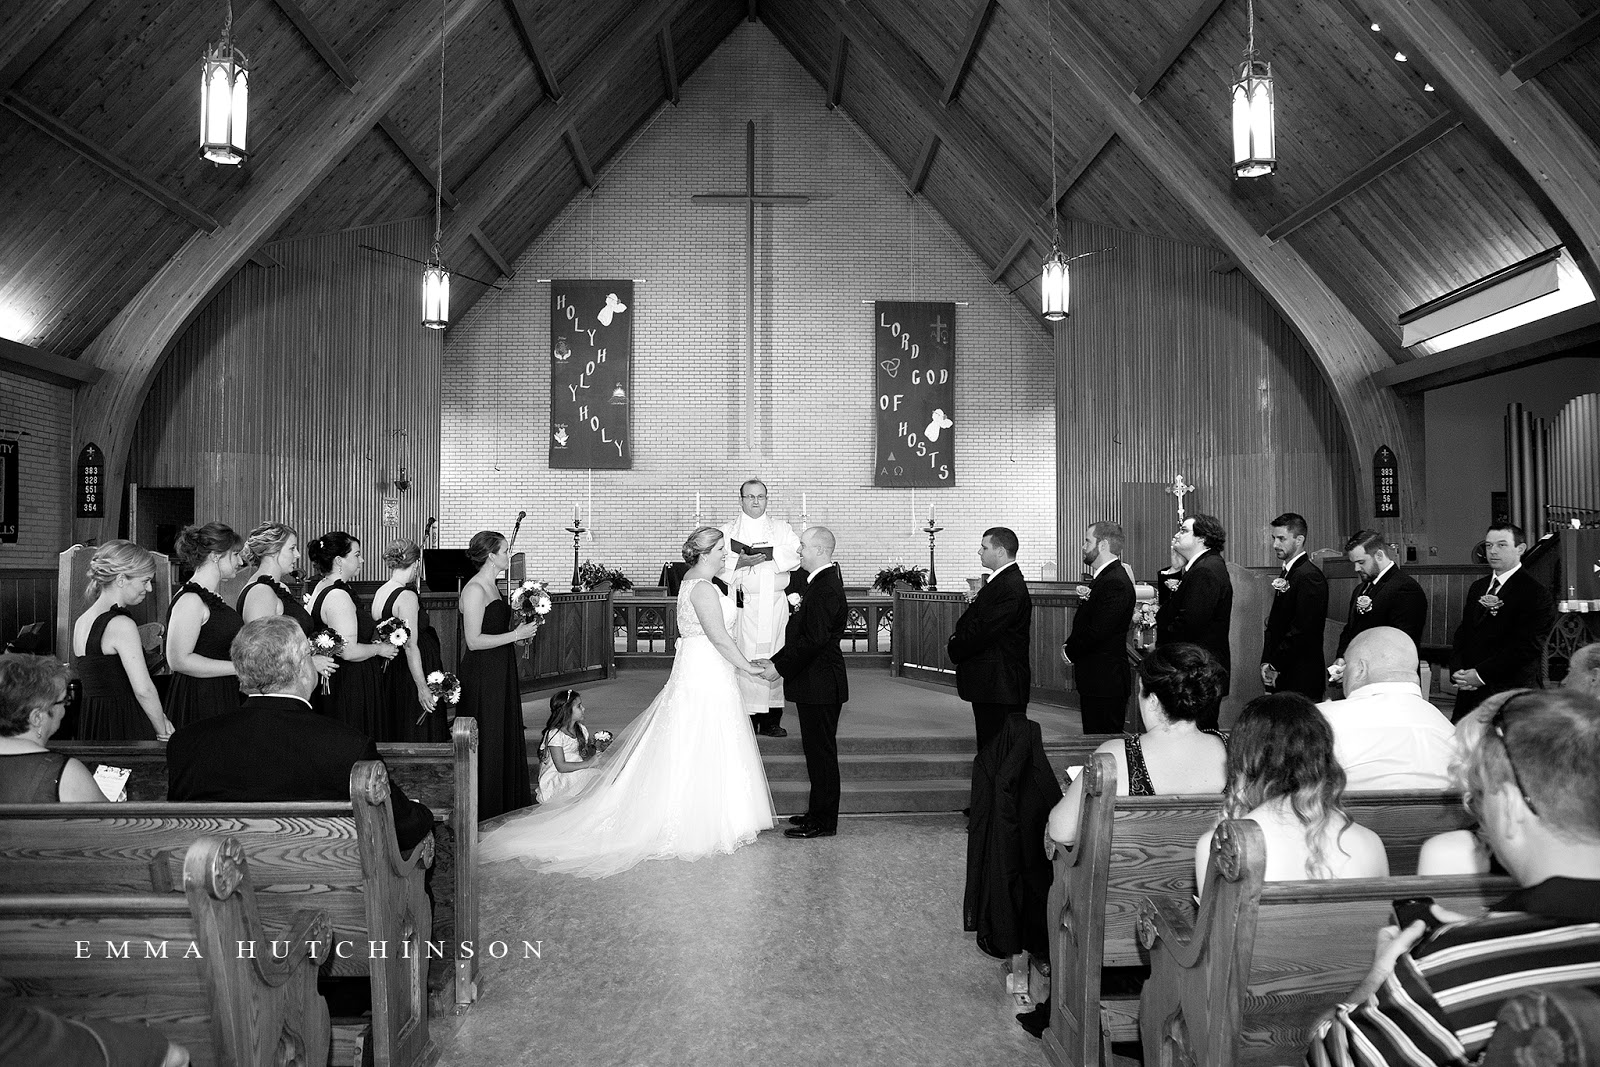 Emma Hutchinson Photography photographs weddings at the Holy Trinity Anglican Church in Grand Falls-Windsor